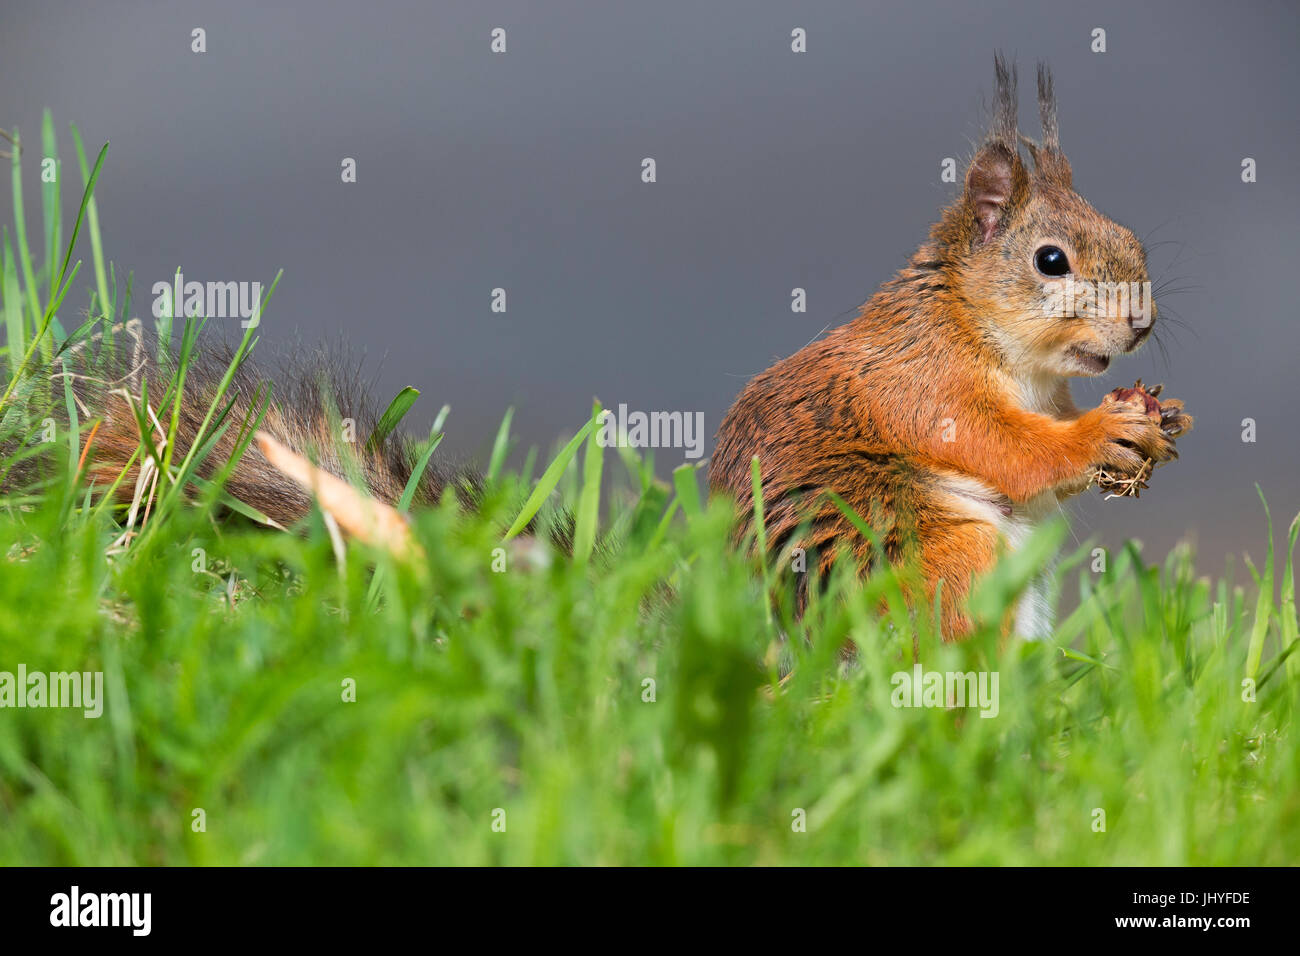 Red Squirrel (Sciurus vulgaris), adult female feeding on a pine cone - Stock Image